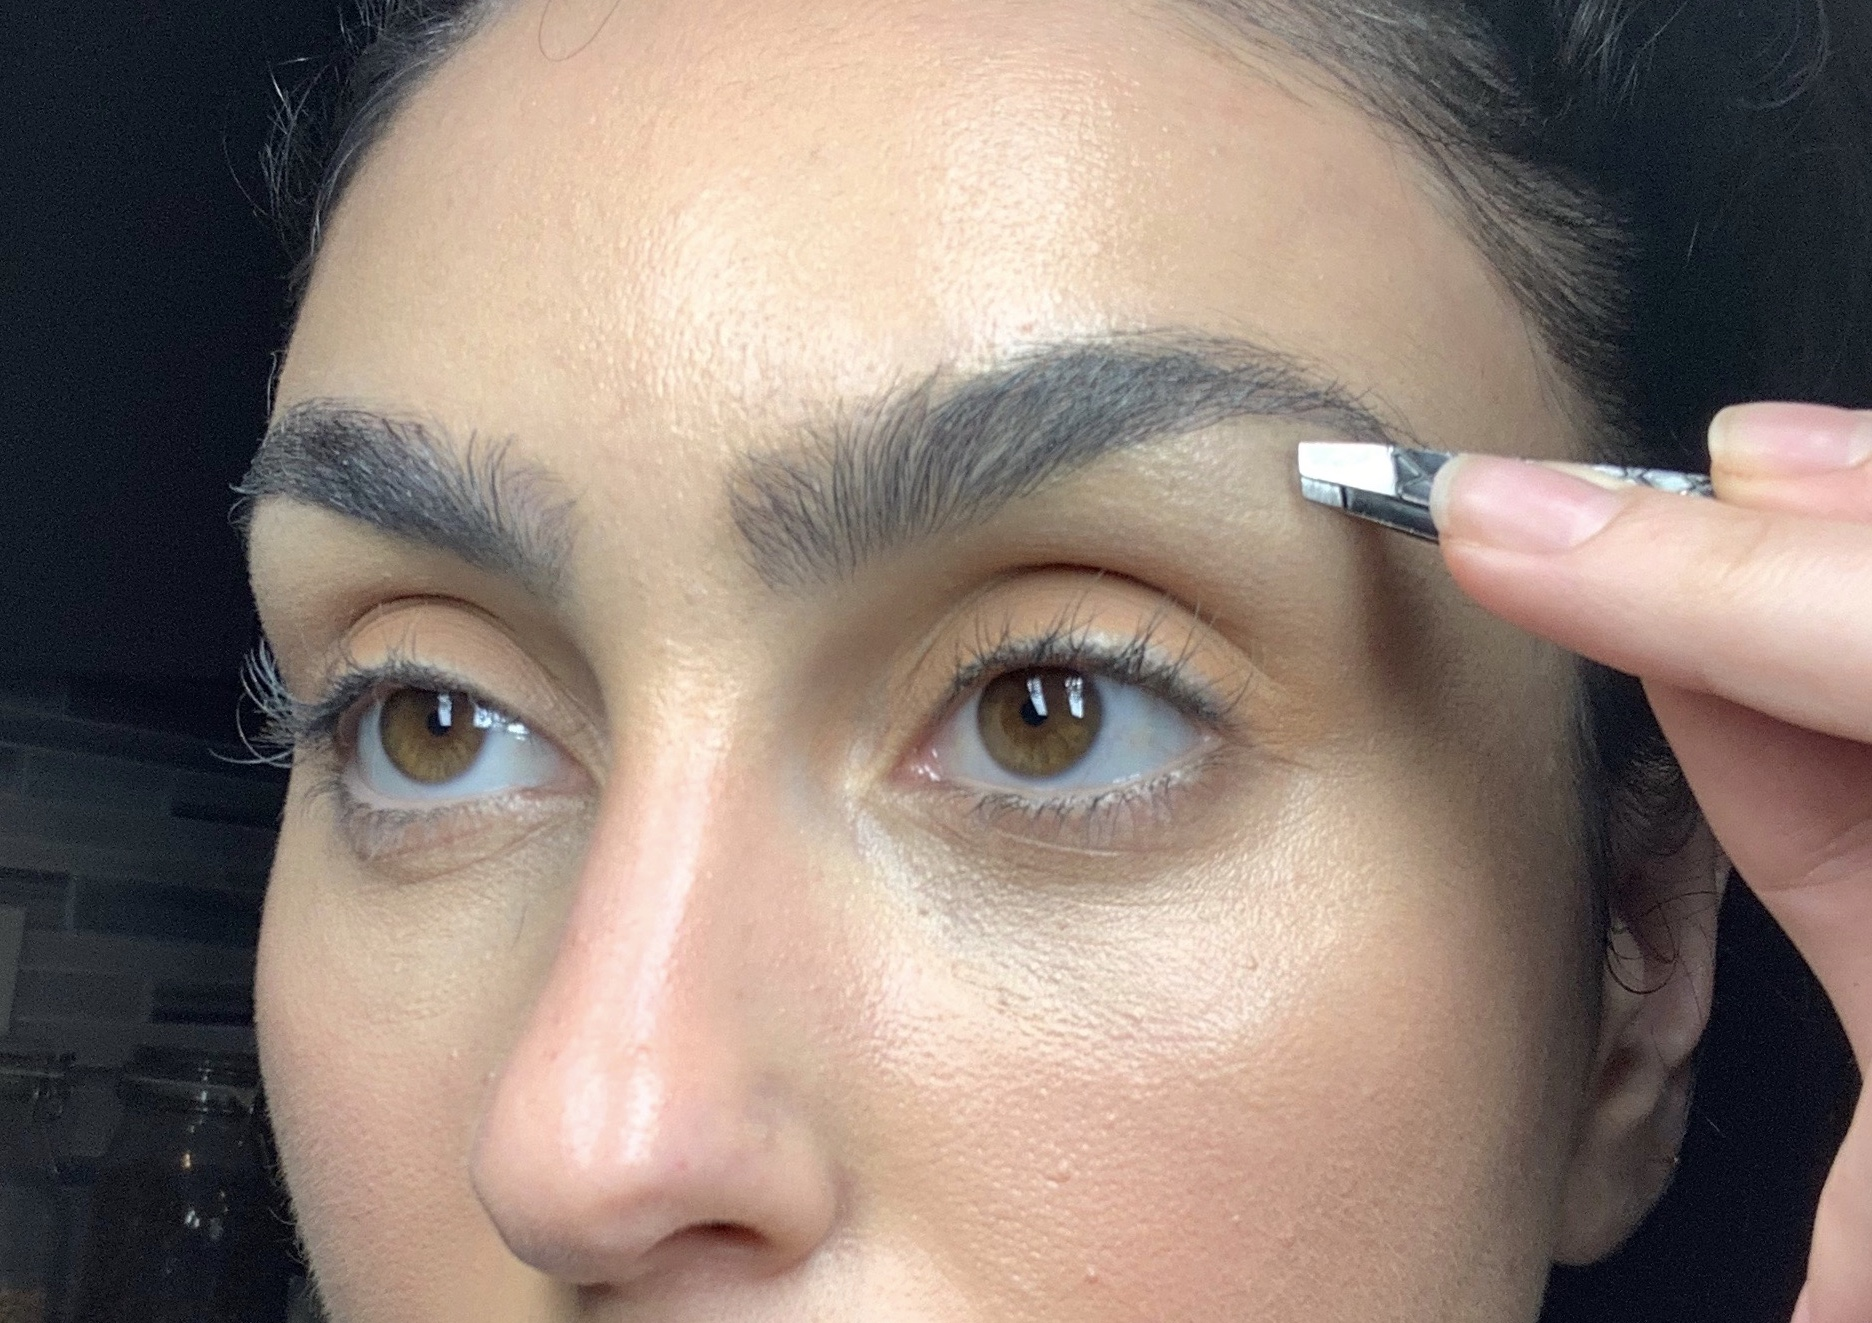 How to Groom Your Eyebrows at Home, According to a Pro ...